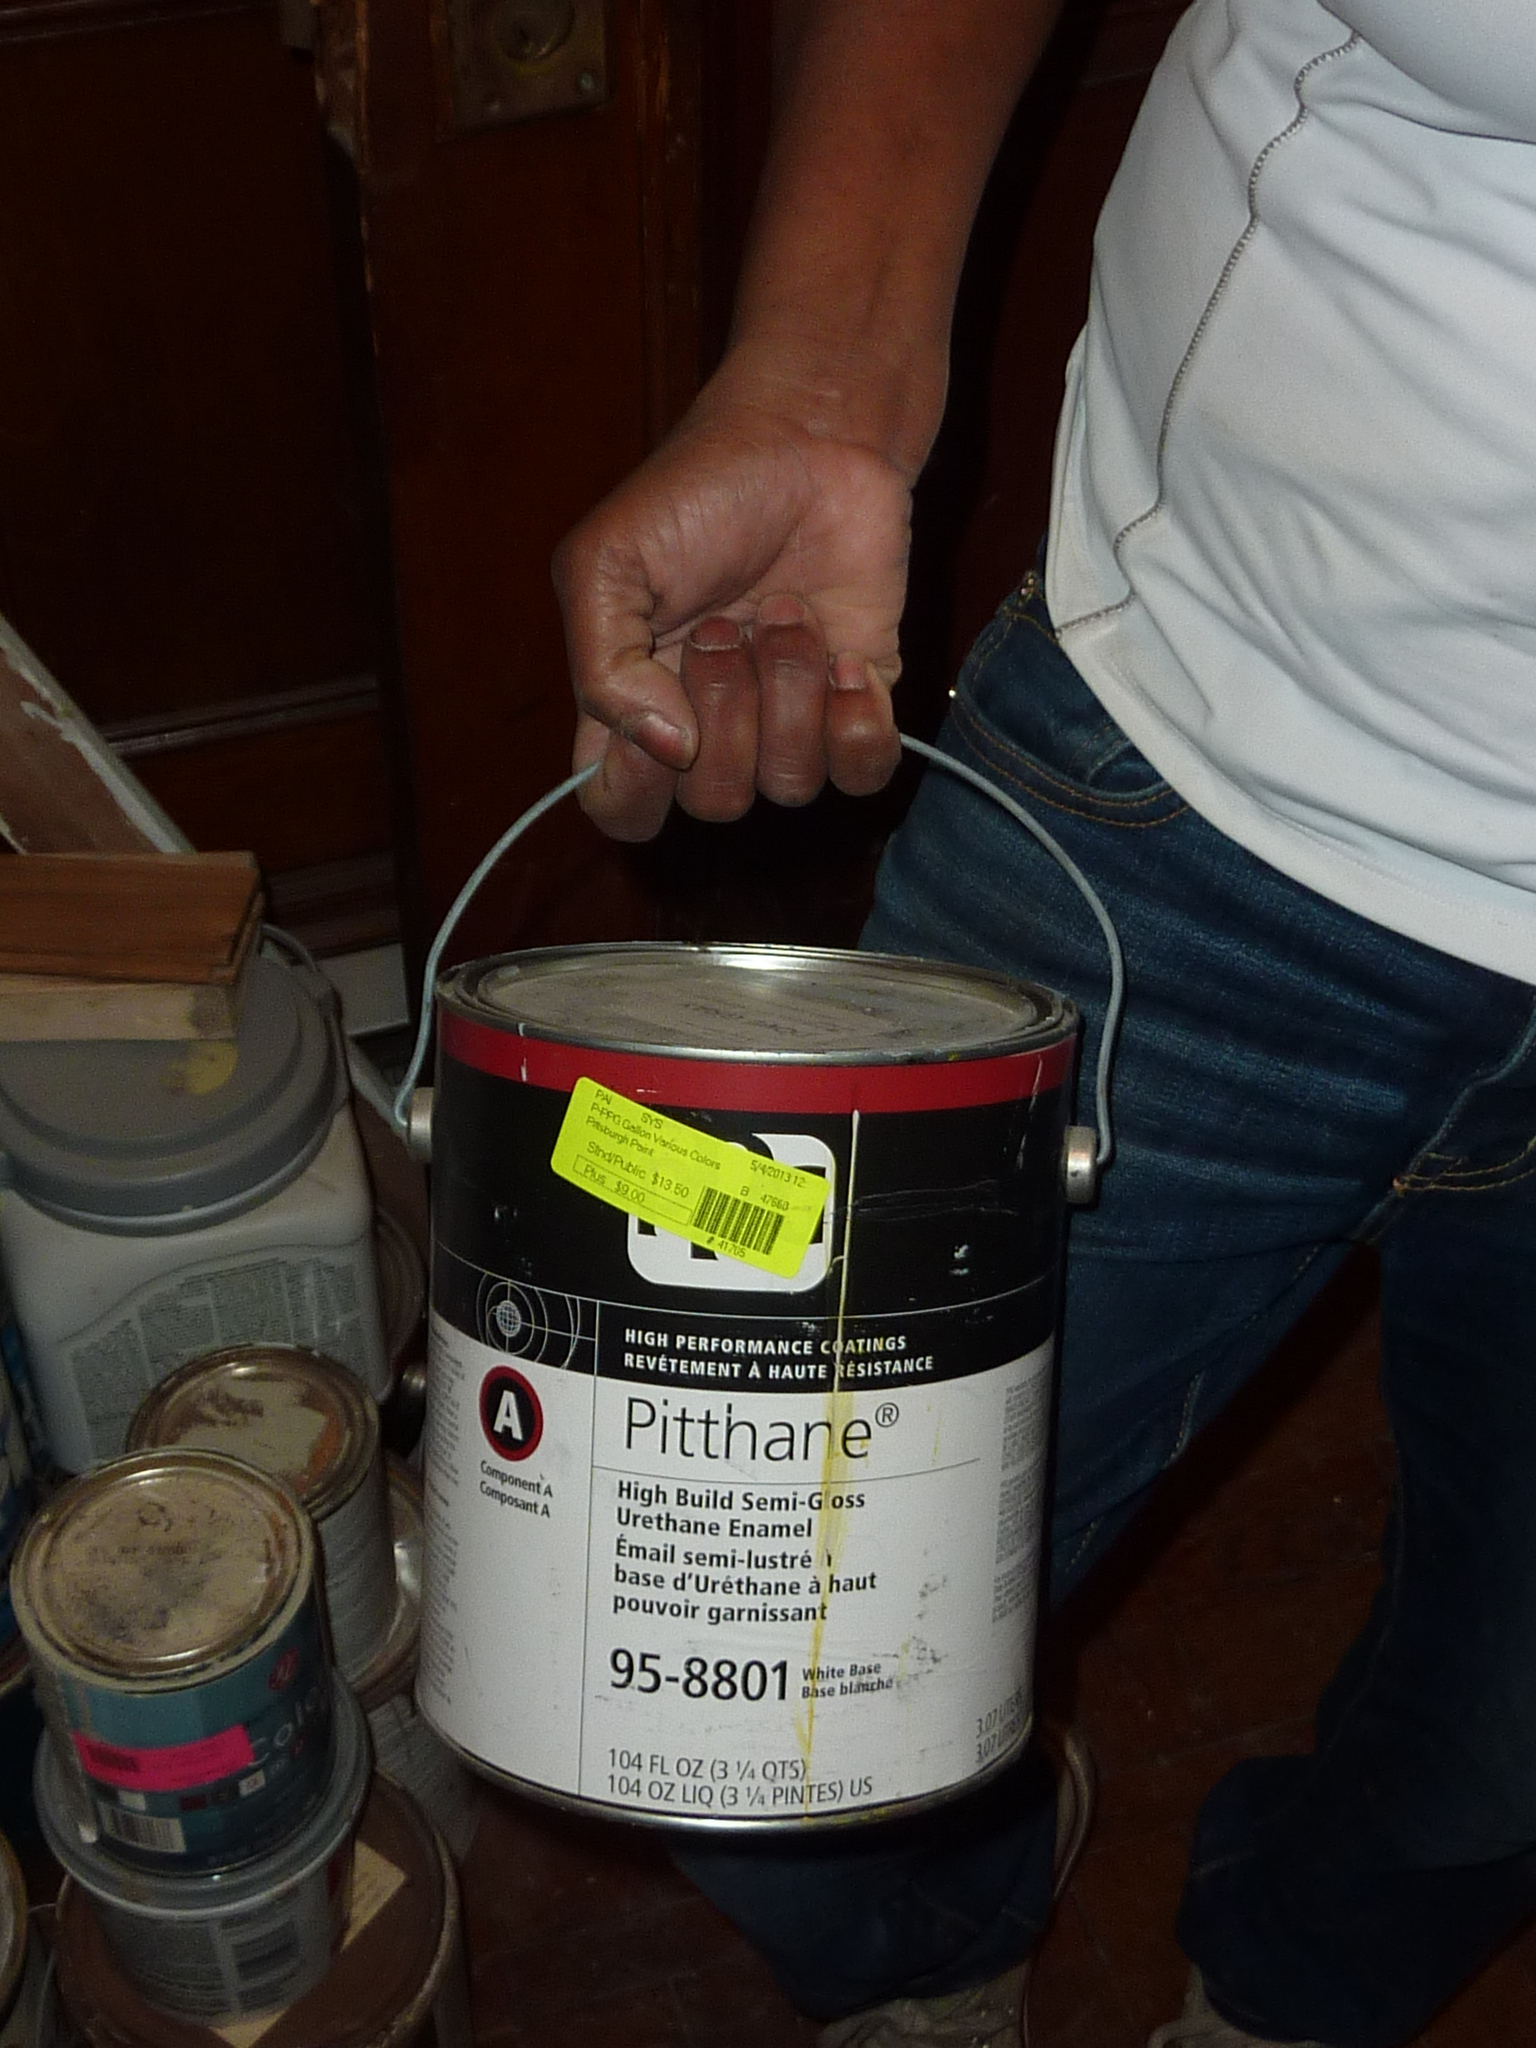 This special paint for metal and masonry was available for just a few dollars.